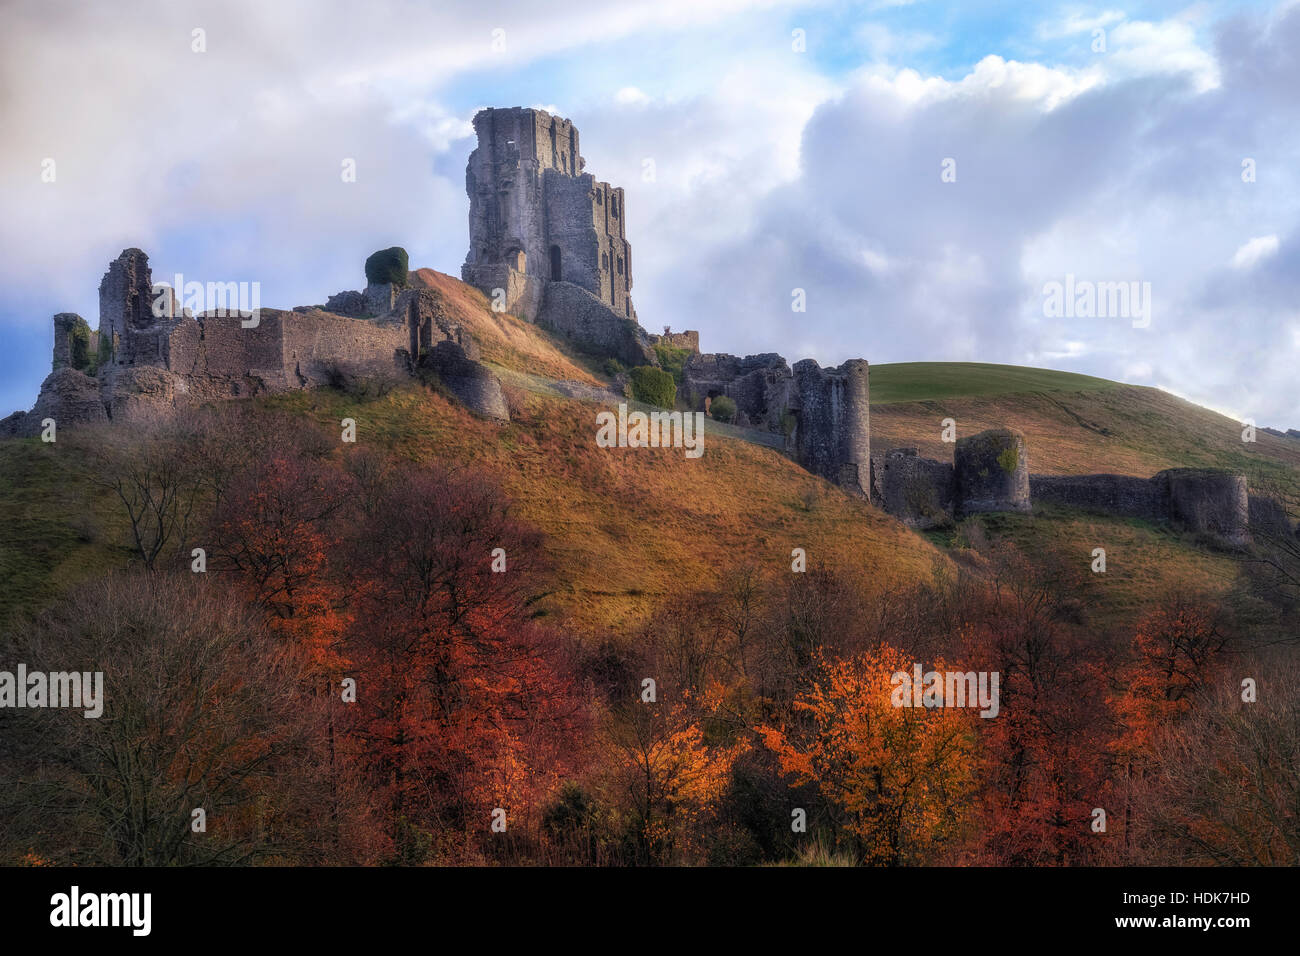 Château de Corfe, Dorset, England, UK Photo Stock